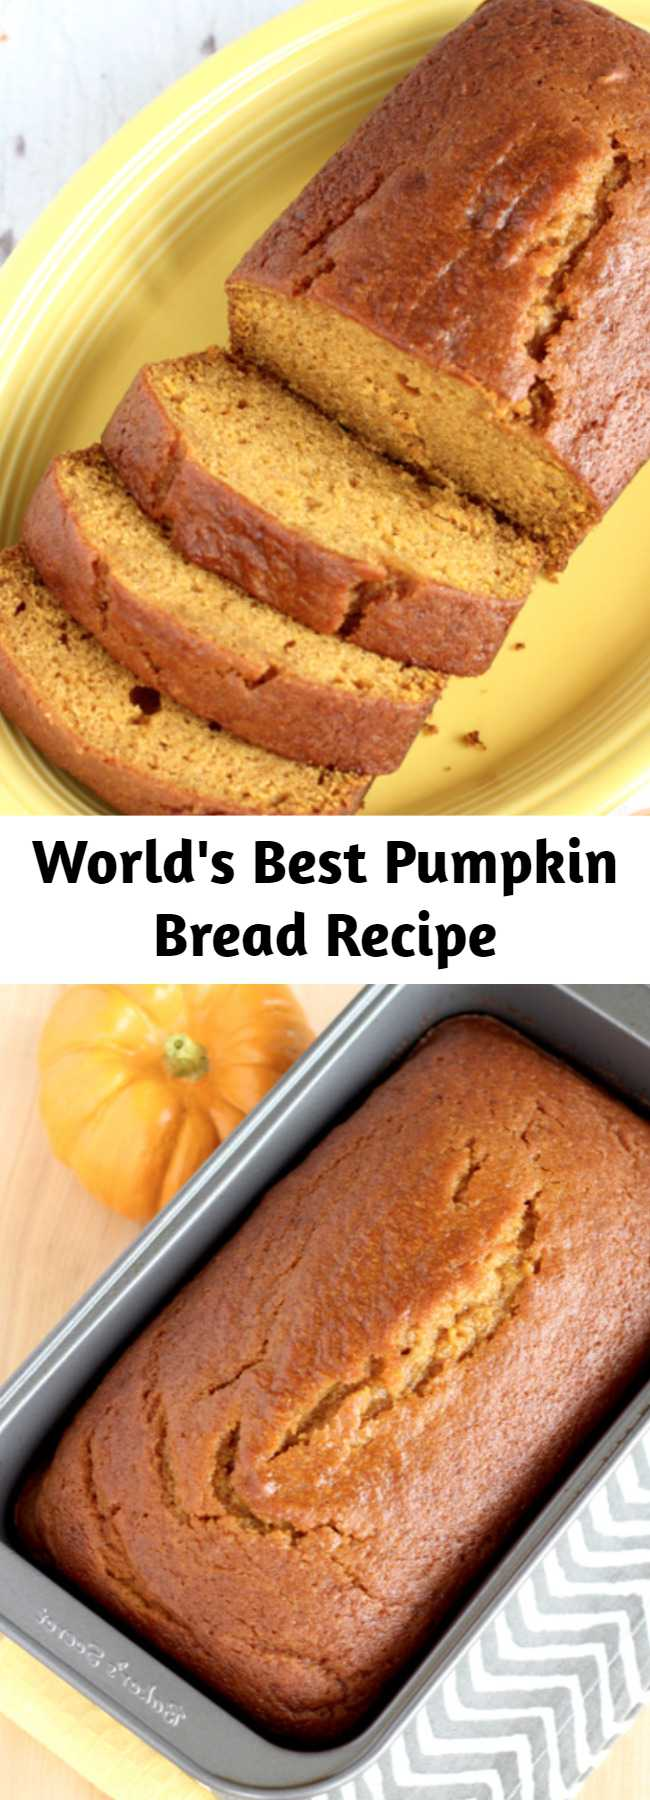 World's Best Pumpkin Bread Recipe - Get ready for a little Pumpkin bliss with this World's Best Pumpkin Bread Recipe! Seriously… it's even better than Starbucks!  And you can keep it easy using Libby's Pumpkin from the can!  Or… get wild and crazy and make your own homemade pumpkin puree from your backyard garden pumpkins! The choice is yours!